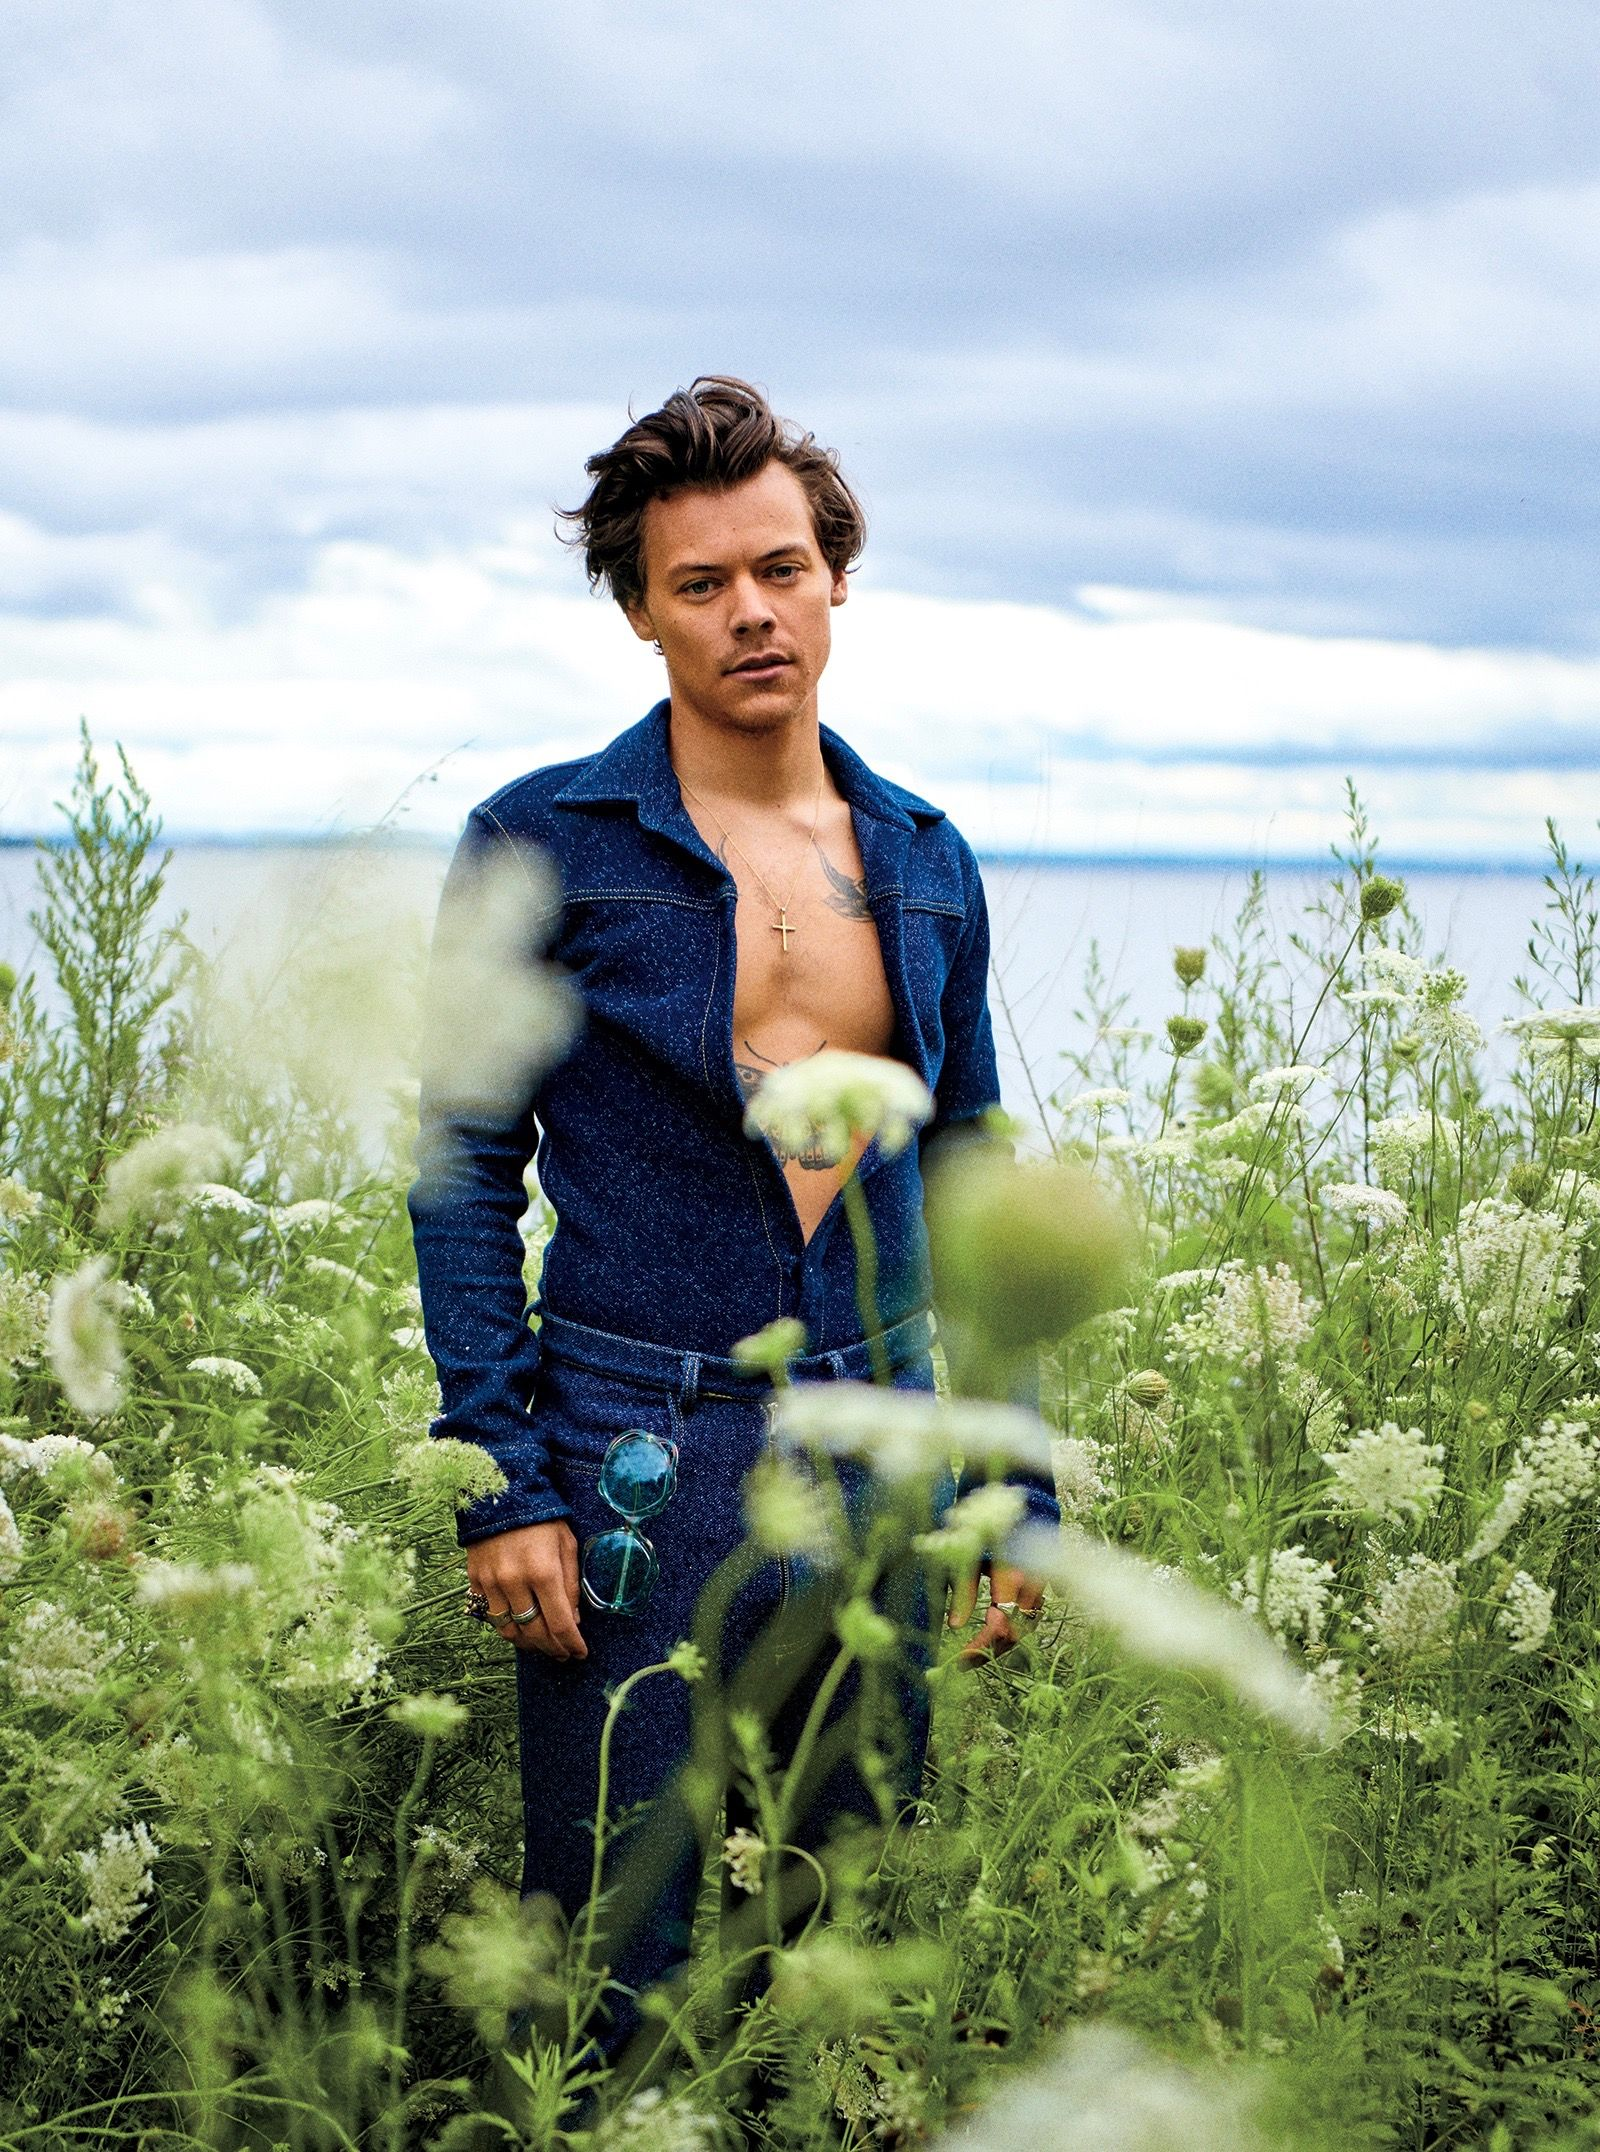 Harry Styles For Rolling Stone September 2019 Image Ryan Mcginley In 2020 Harry Styles Photos Harry Styles Wallpaper Harry Styles